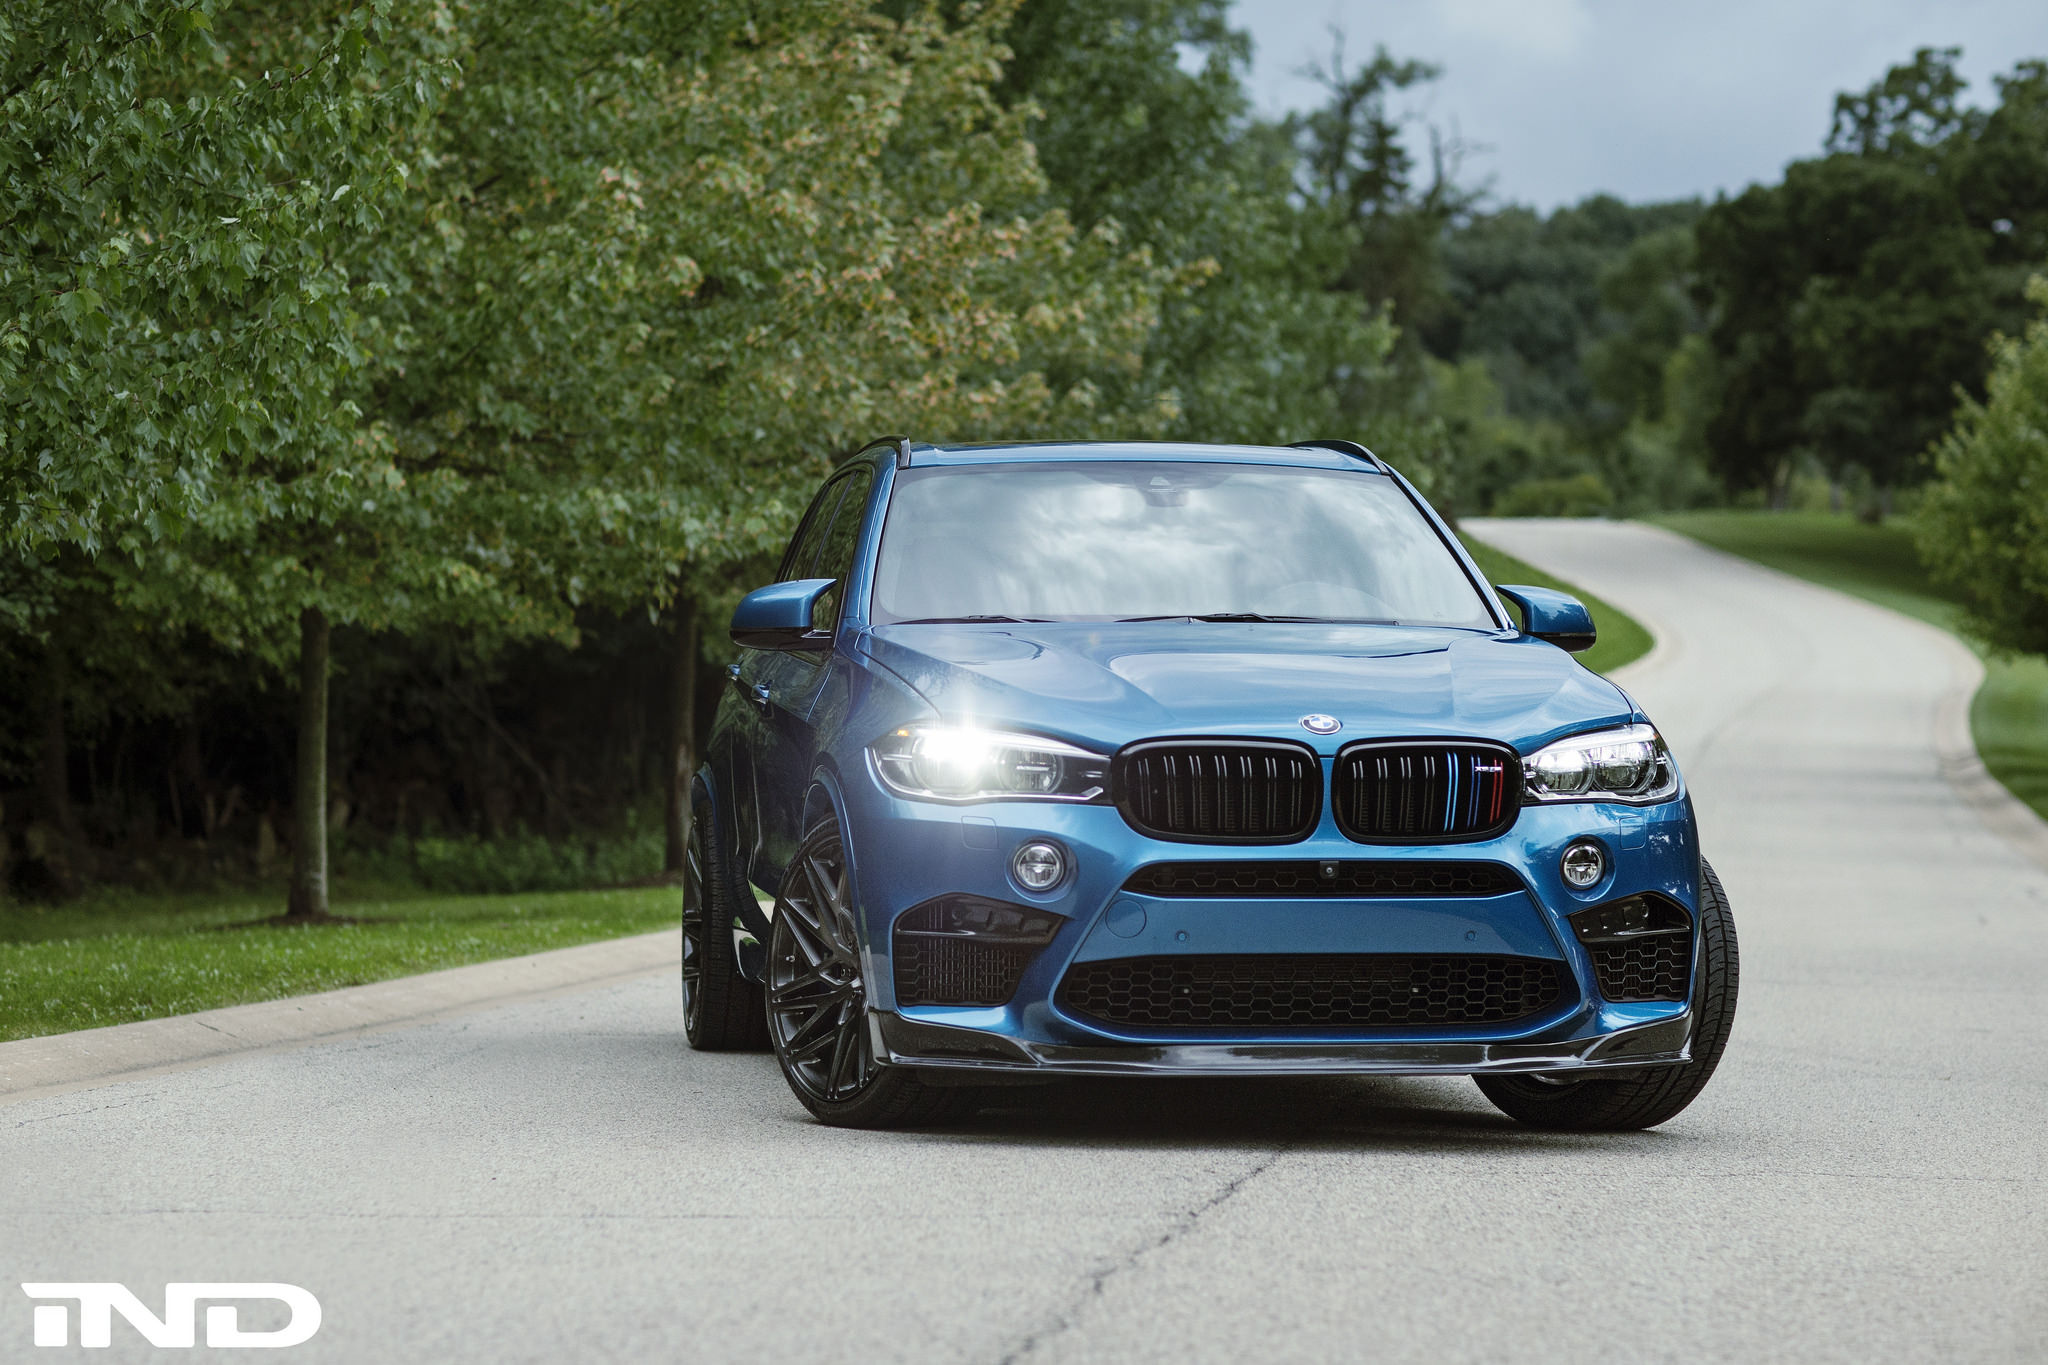 Bmw F85 X5m By Ind On Velos D7 Forged Wheels Velos